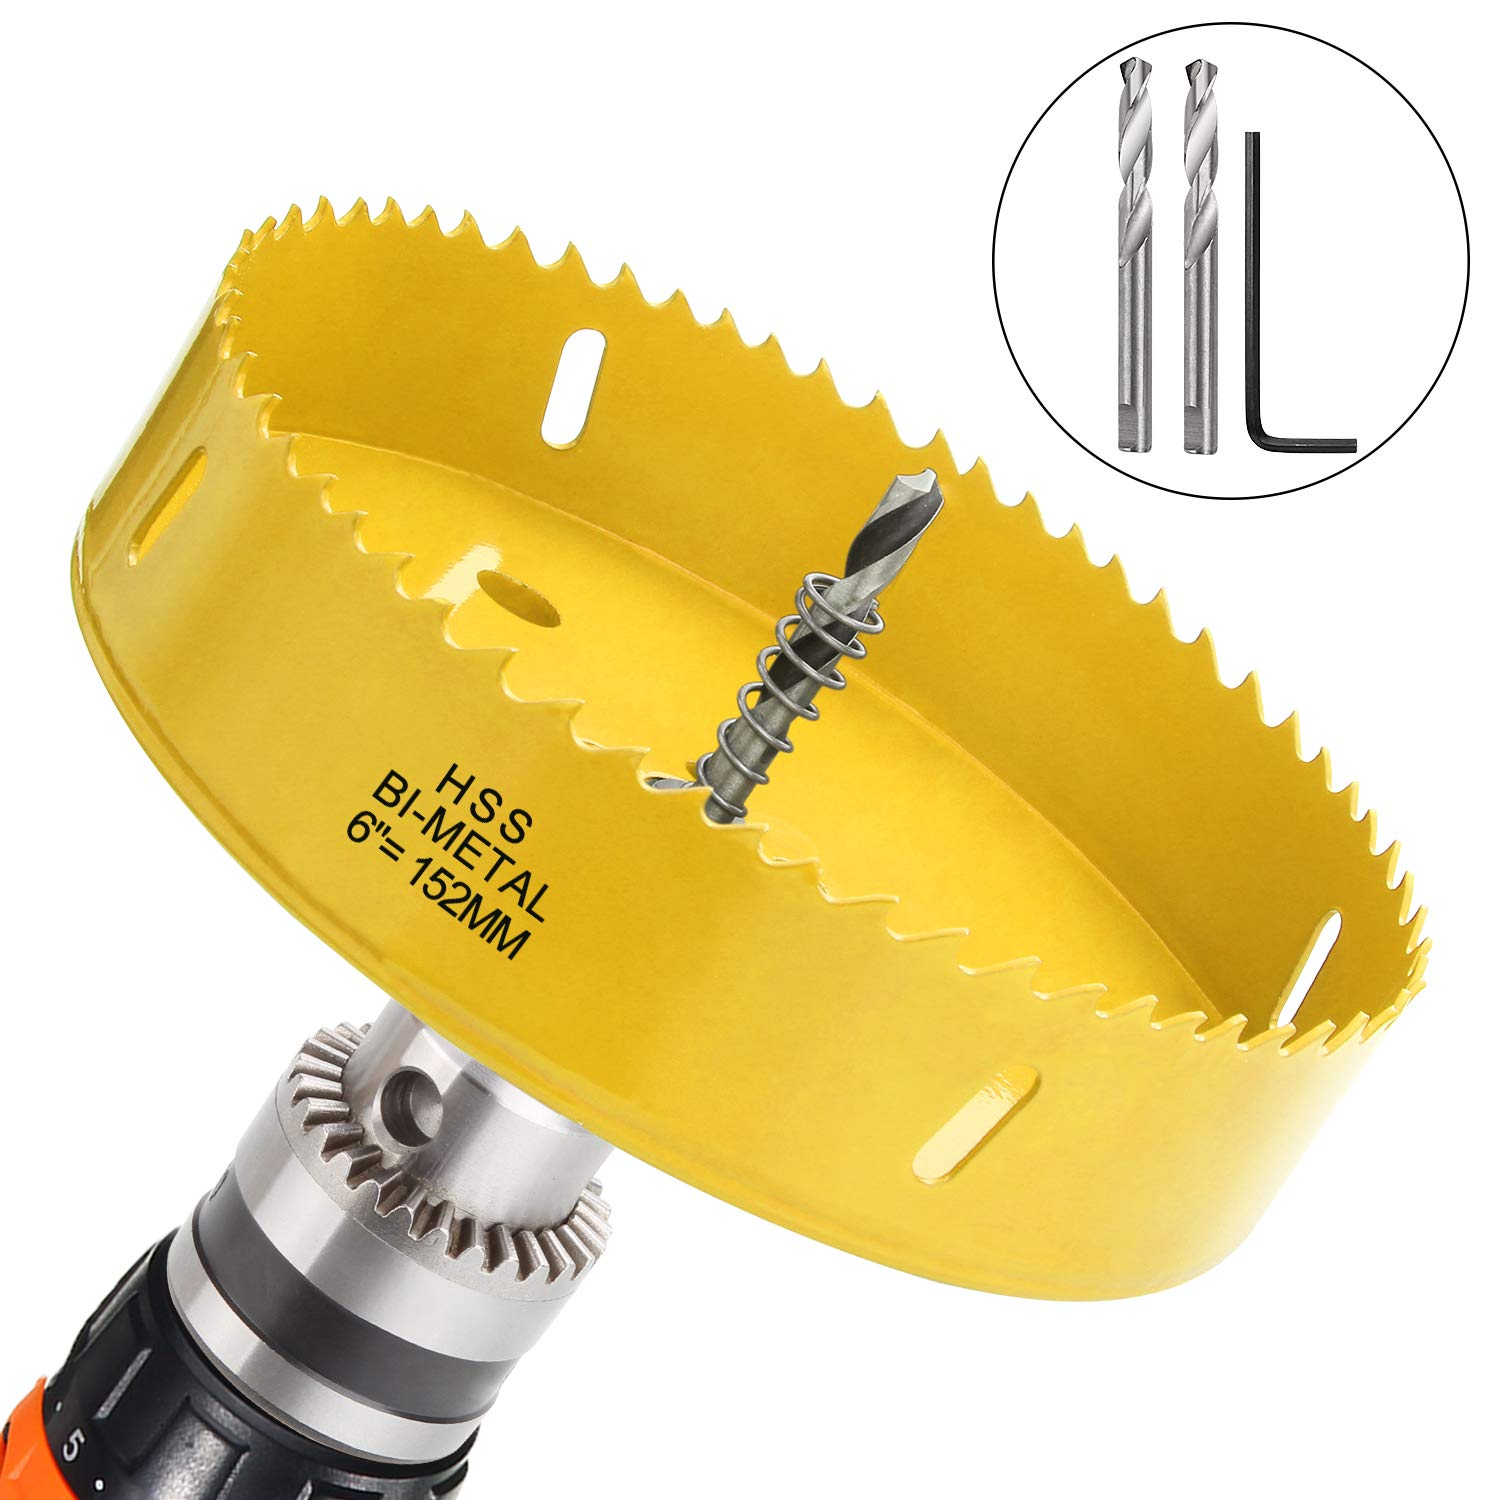 6 inch Hole Saw Blade for Cornhole Boards Corn Hole Drilling Cutter 152mm in Diameter BI-Metal Heavy Duty Steel & Hex Shank Drill Bit Adapter By STARVAST for Cornhole Game, Home Improvement (Yellow)